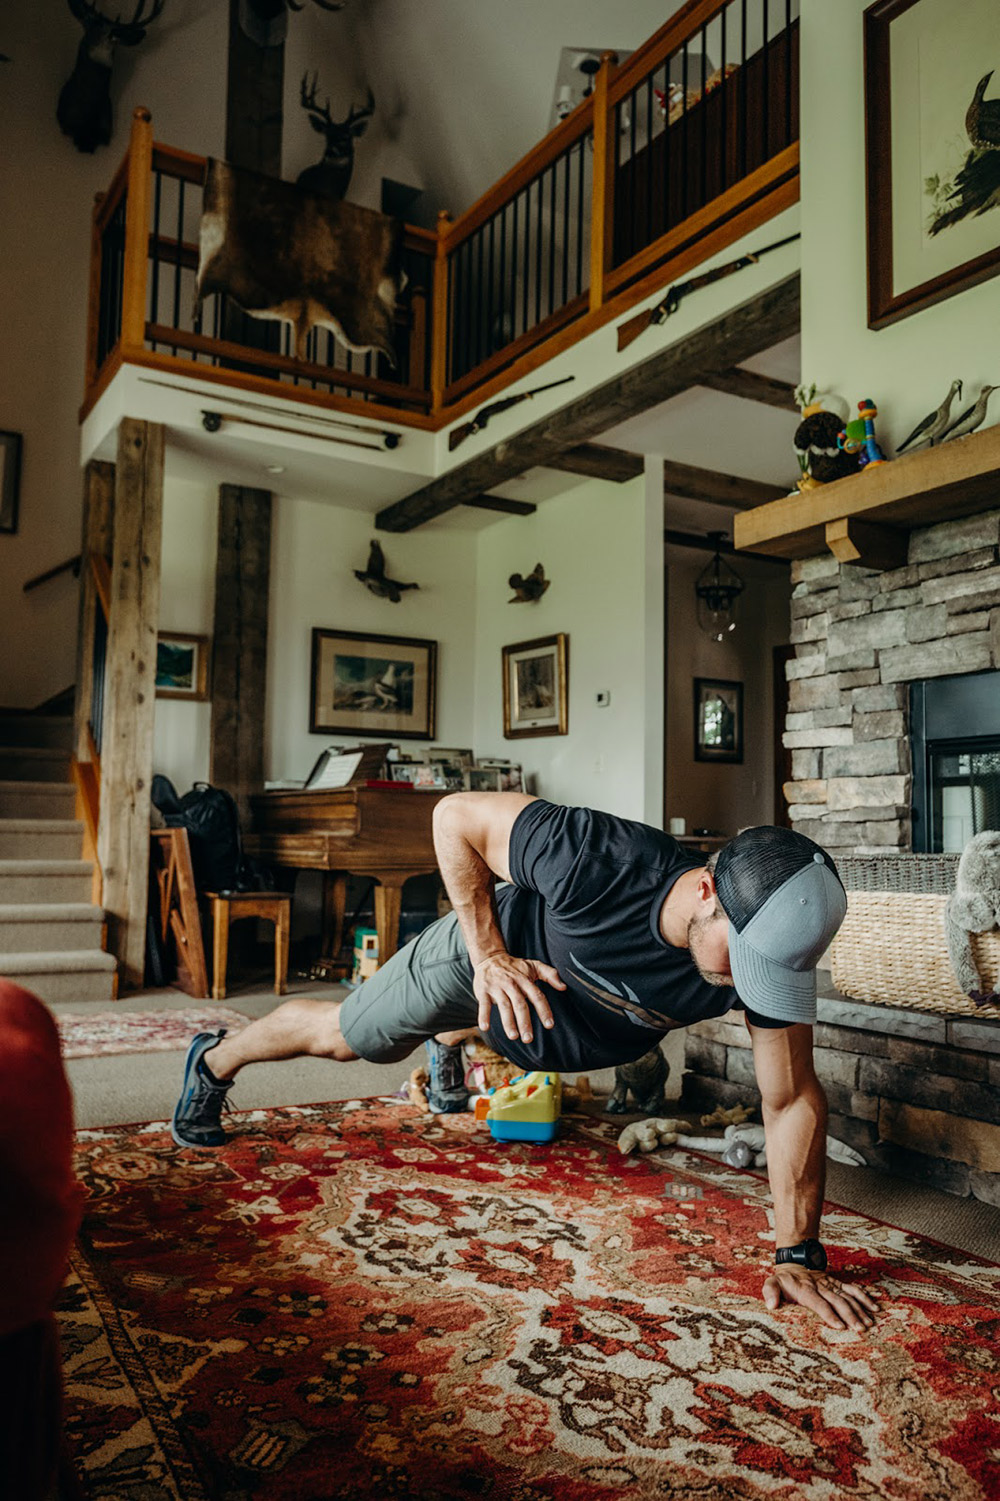 Pushups at home